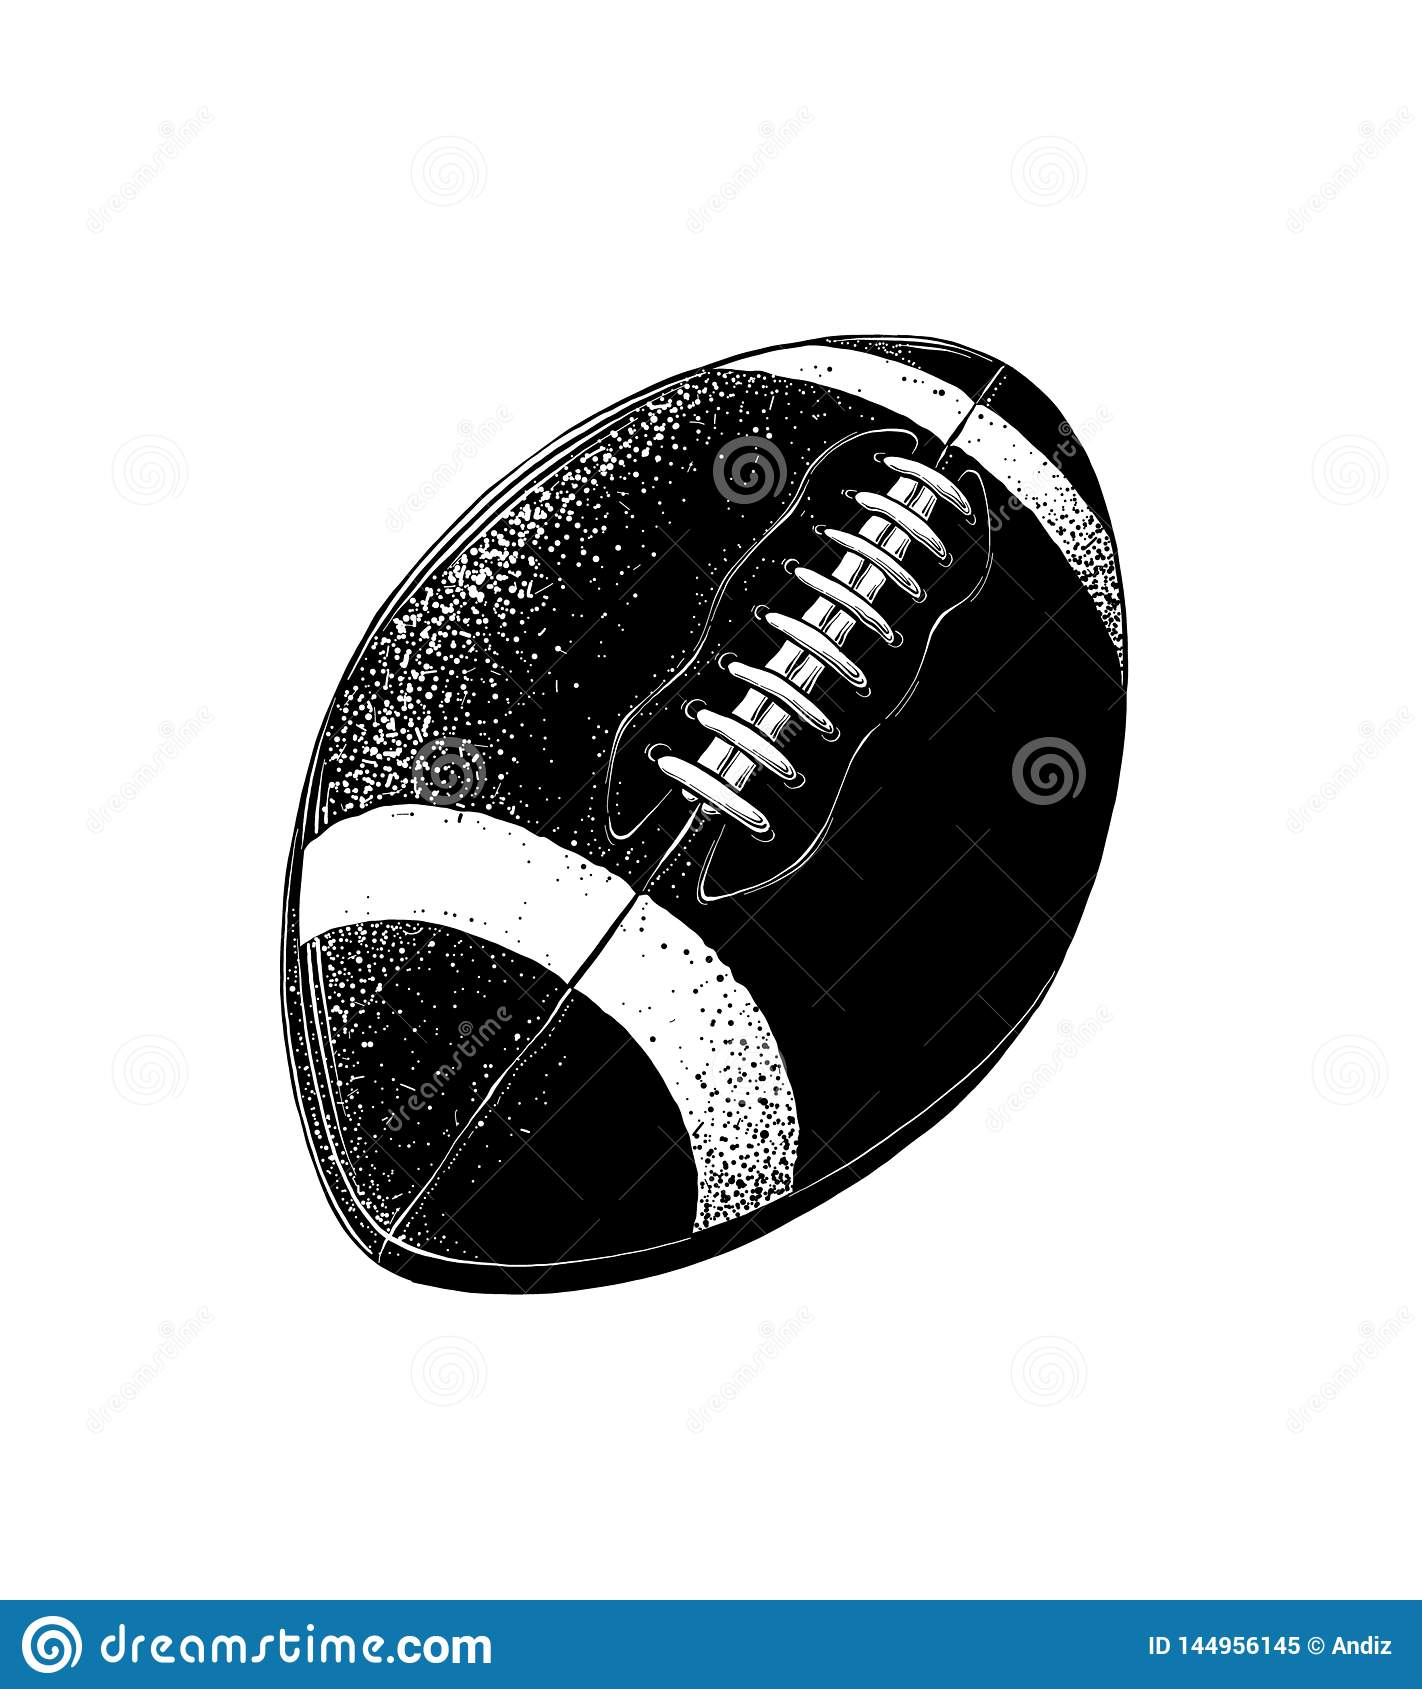 Vector Drawing Of Rugby Ball In Black Color Isolated On White Background Graphic Illustration Hand Drawing Drawing Stock Vector Illustration Of League Background 144956145